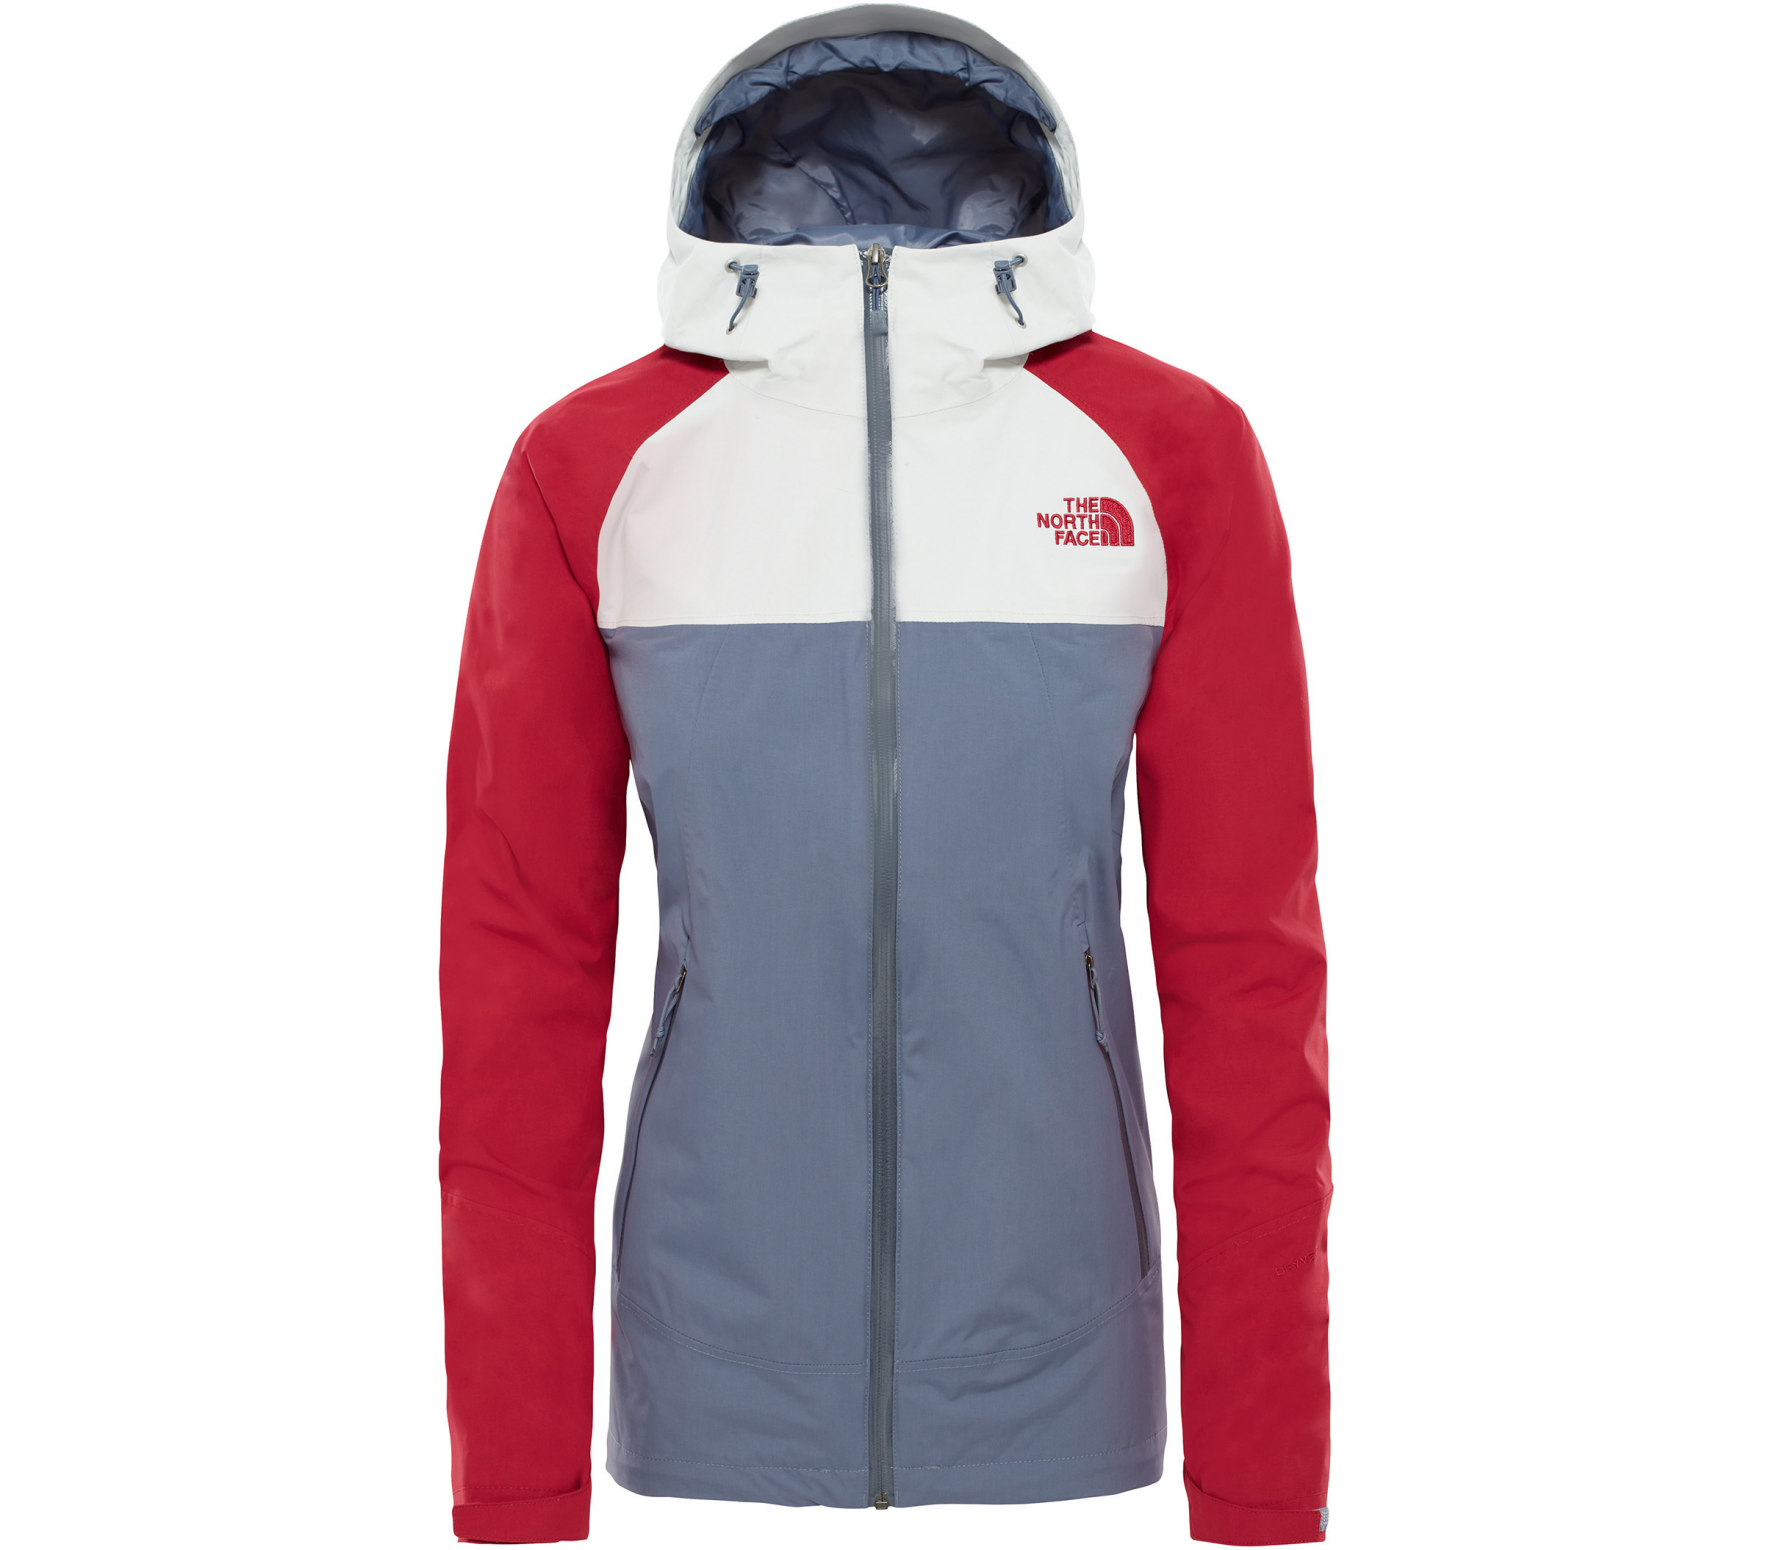 The North Face - Stratos Damen Outdoorjacke (grau/rot)